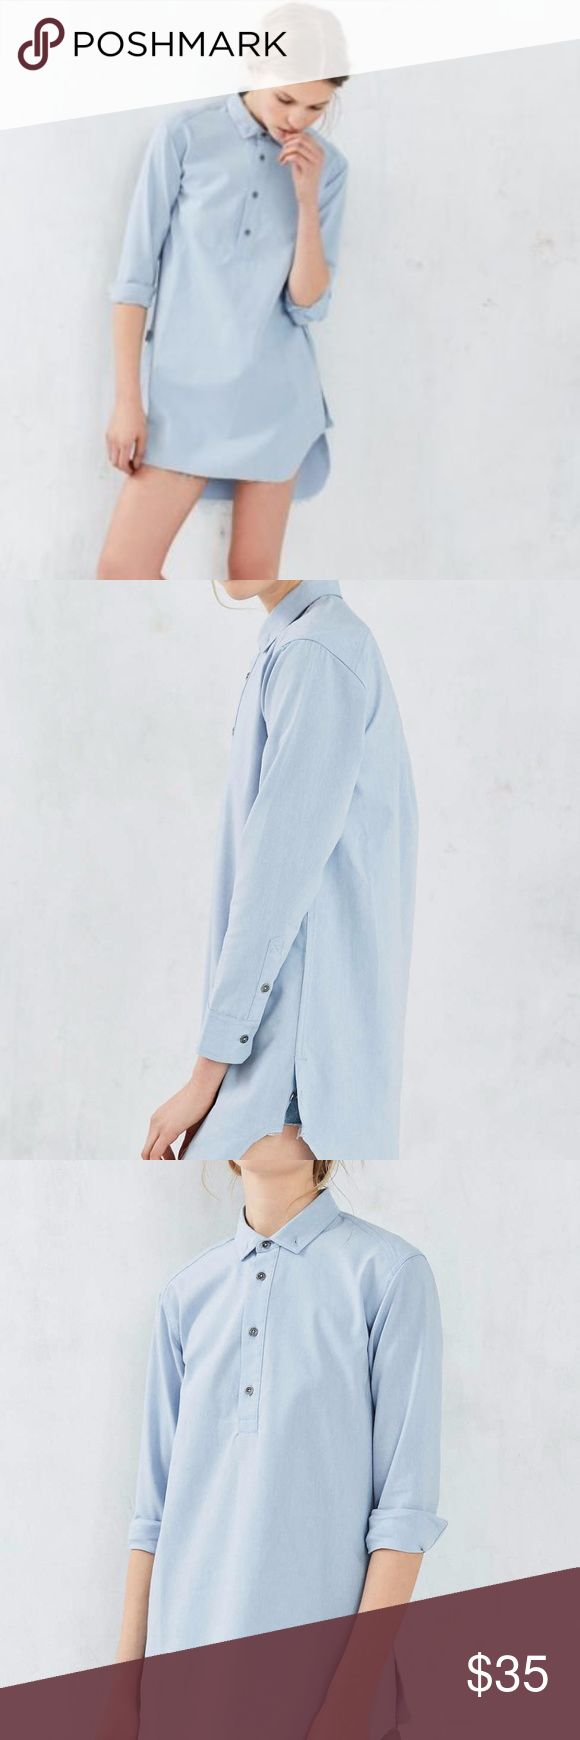 Publish Maggie Button-down Shirt Dress ● Stretch oxford long sleeve popover woven ● Scallop bottom hem with long back detail ● Button side split closure ● Distressed metal sew buttons ● Single back yoke pleat ● Raw single needle hem  Material:  55% Cotton, 40% Polyester, 5% Spandex Urban Outfitters Dresses Mini